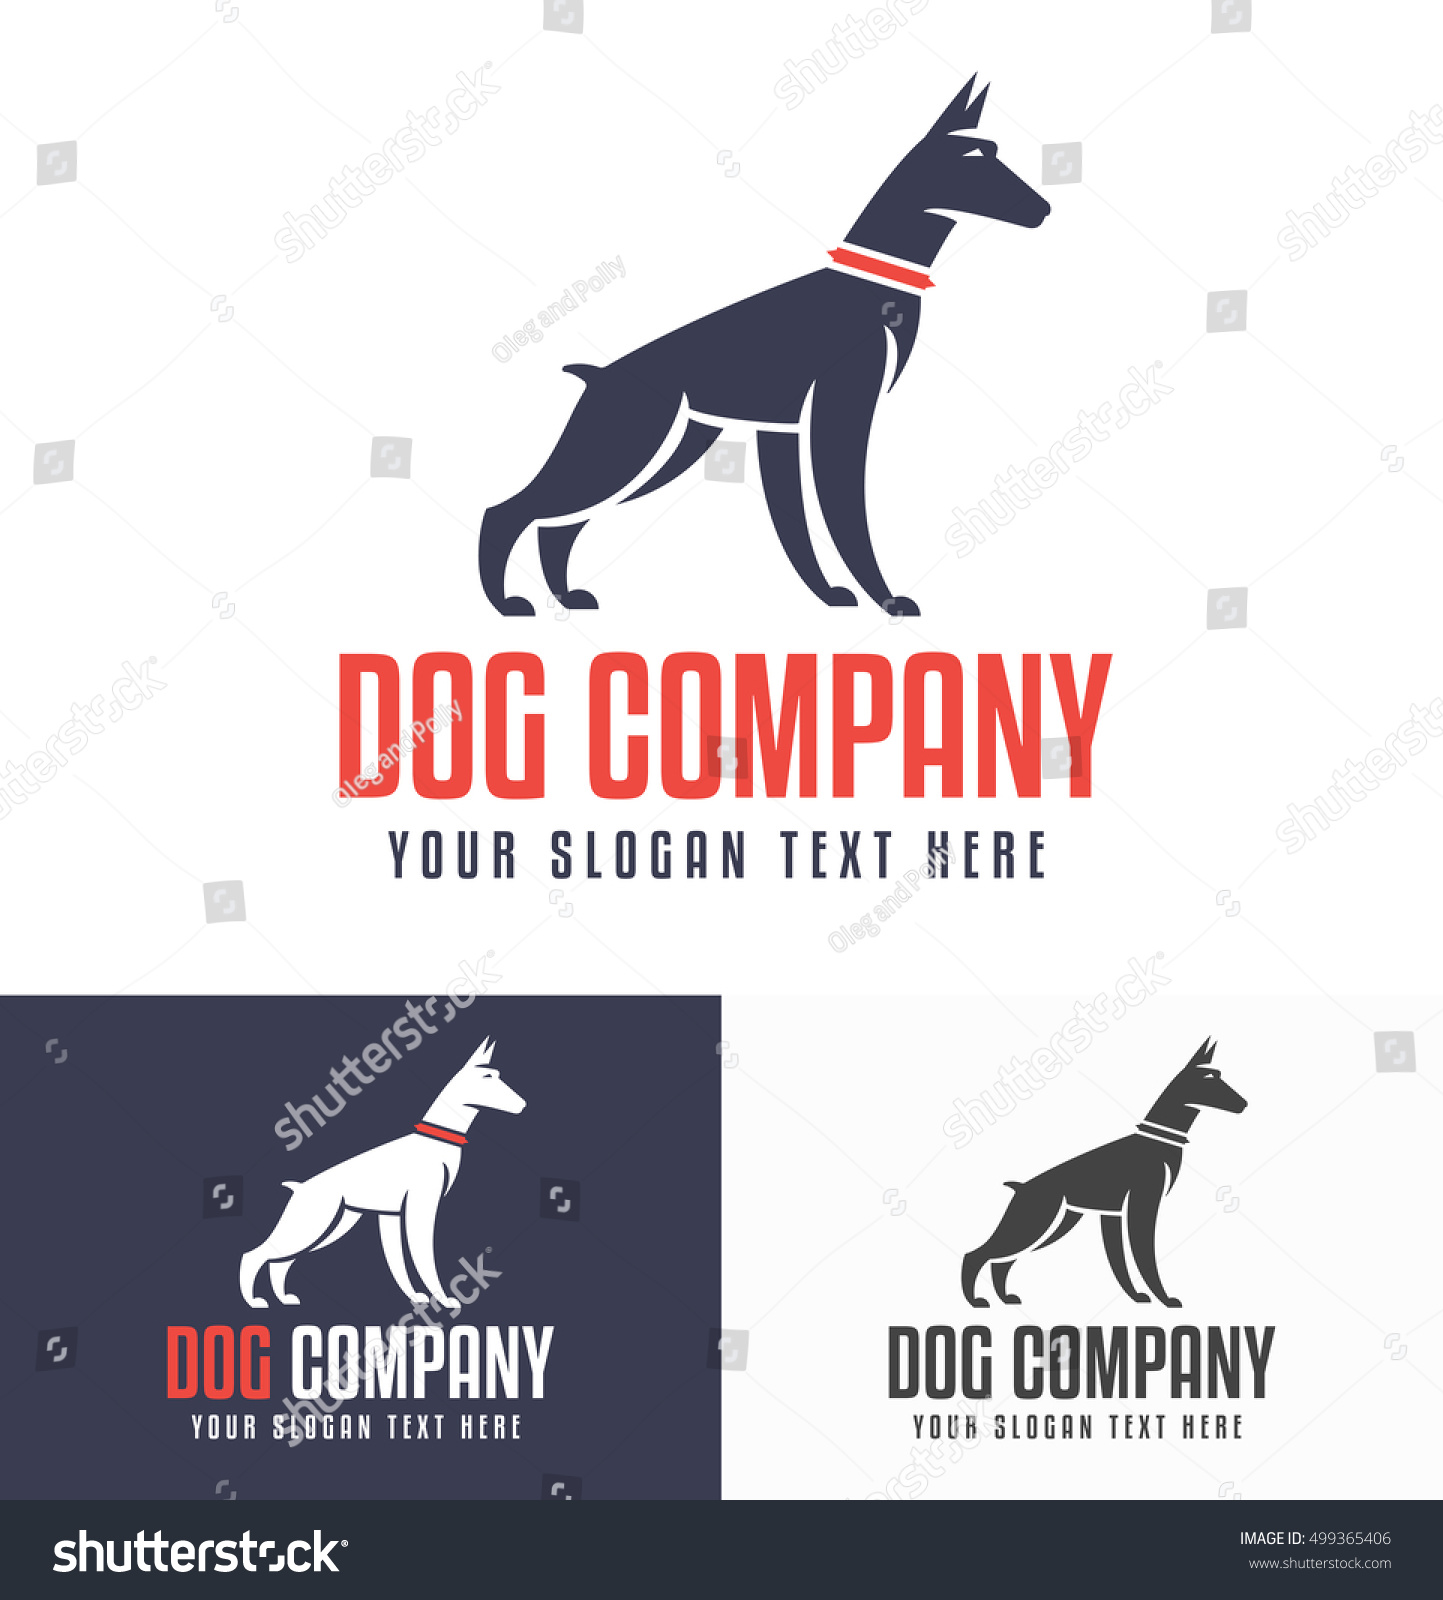 logo design for dog walking training or dog related business with the doberman silhouette in